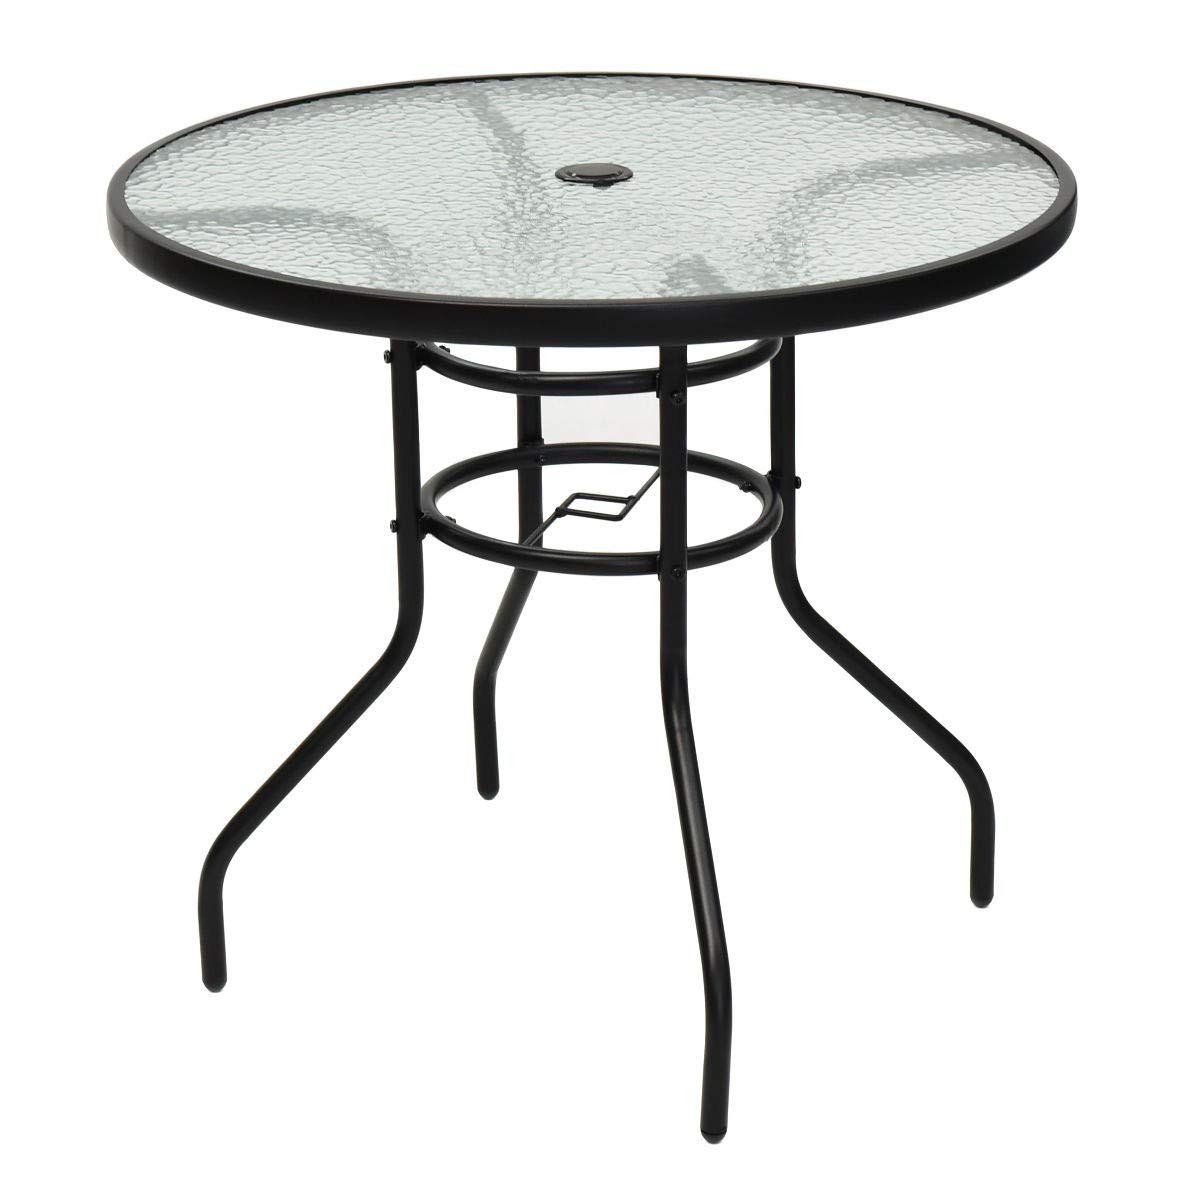 Amazon com lhone 31 5 outdoor dining table patio tempered glass table patio bistro table with umbrella hole stand round table garden outdoor